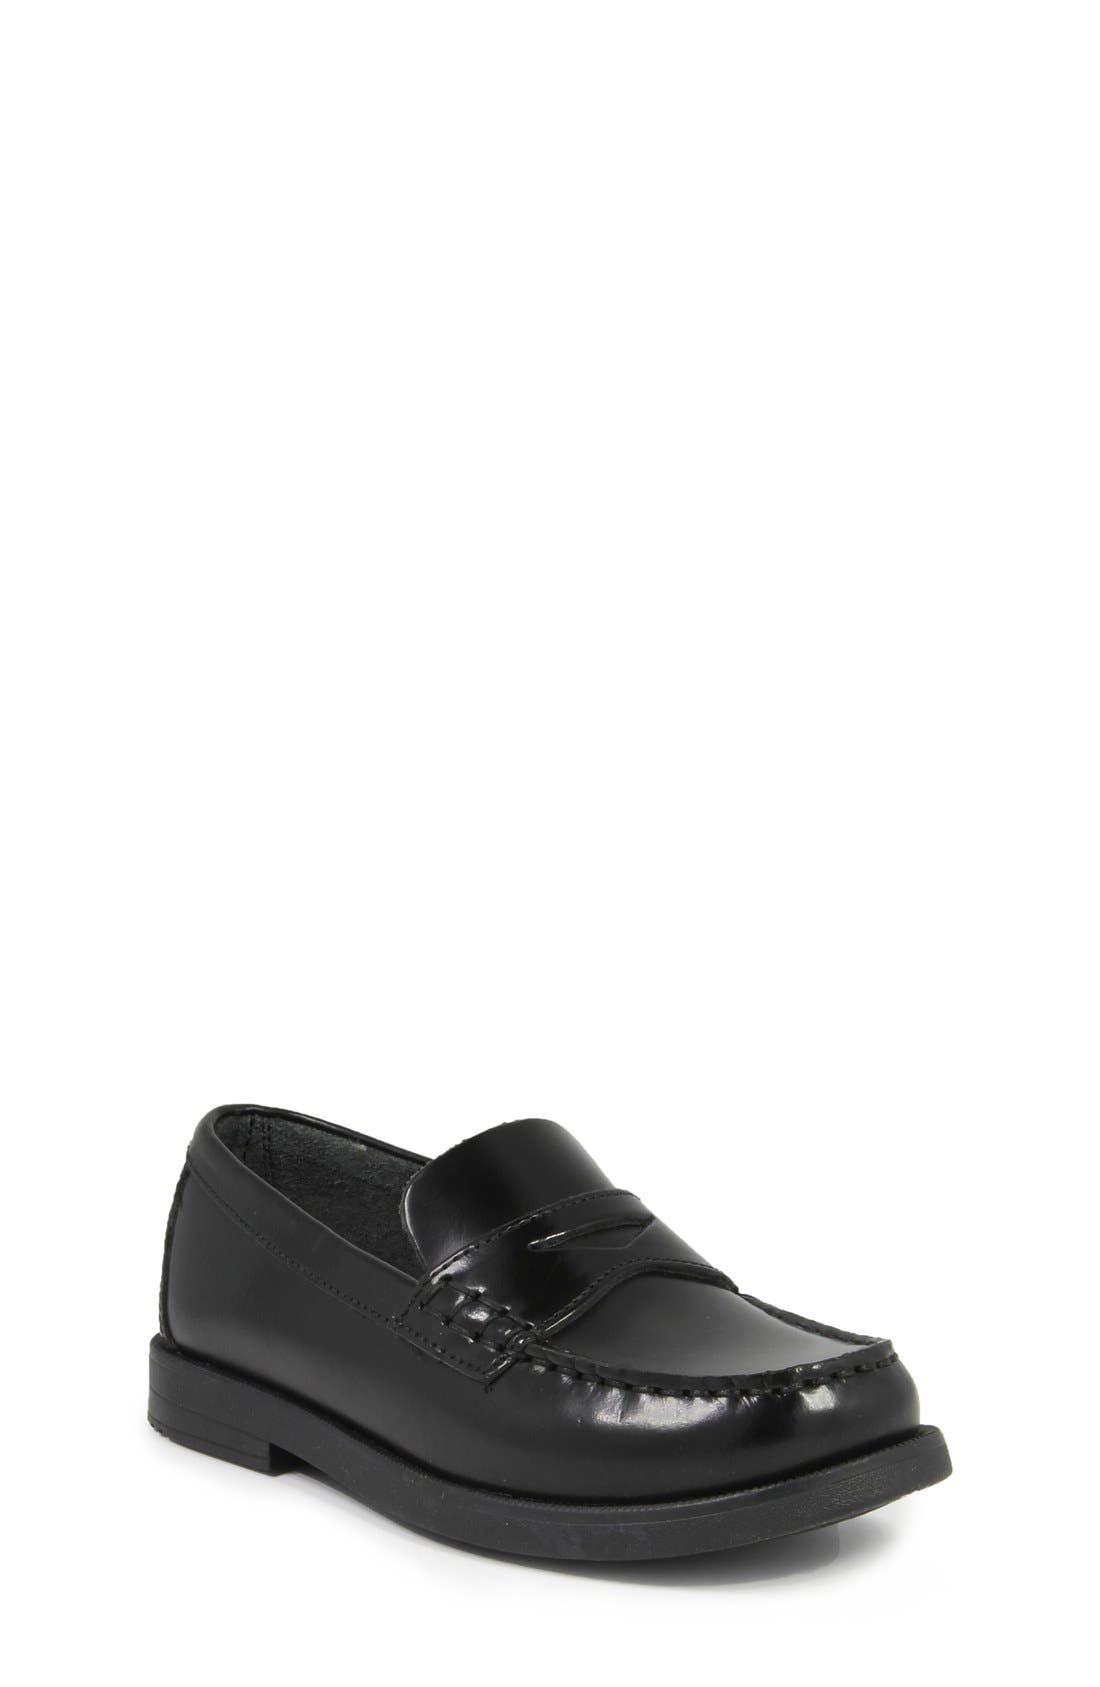 'Croquet' Penny Loafer,                             Main thumbnail 1, color,                             BLACK